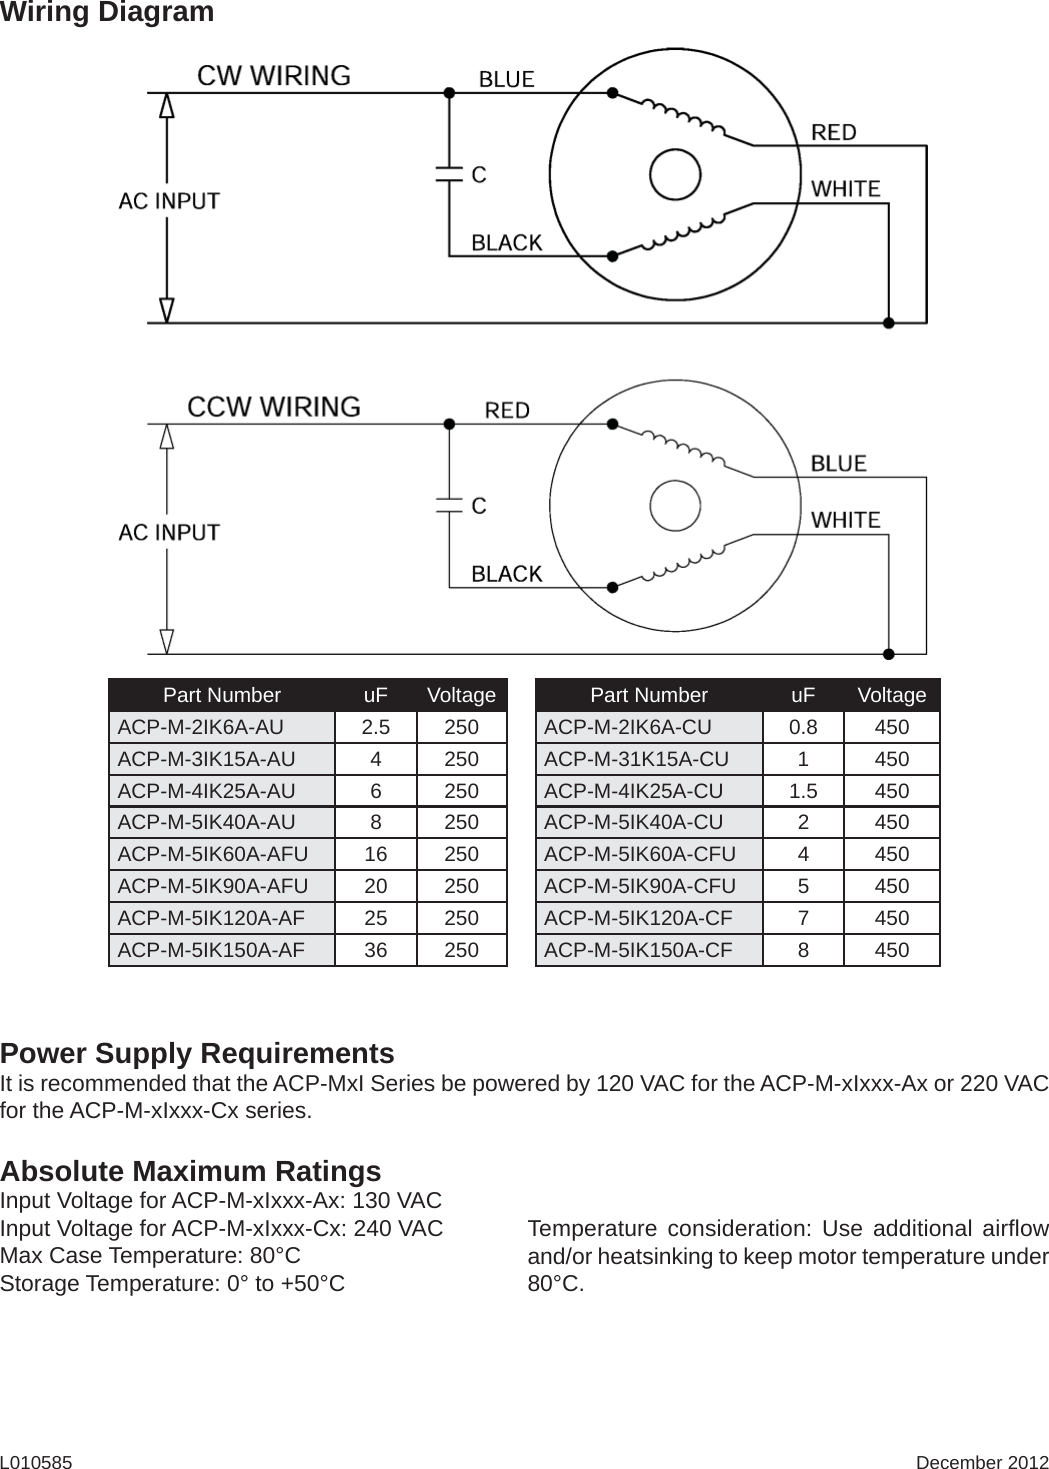 L010585 Acp Mxi Gear Motor Series Users Guide Mx I Wiring Diagram Page 3 Of 12